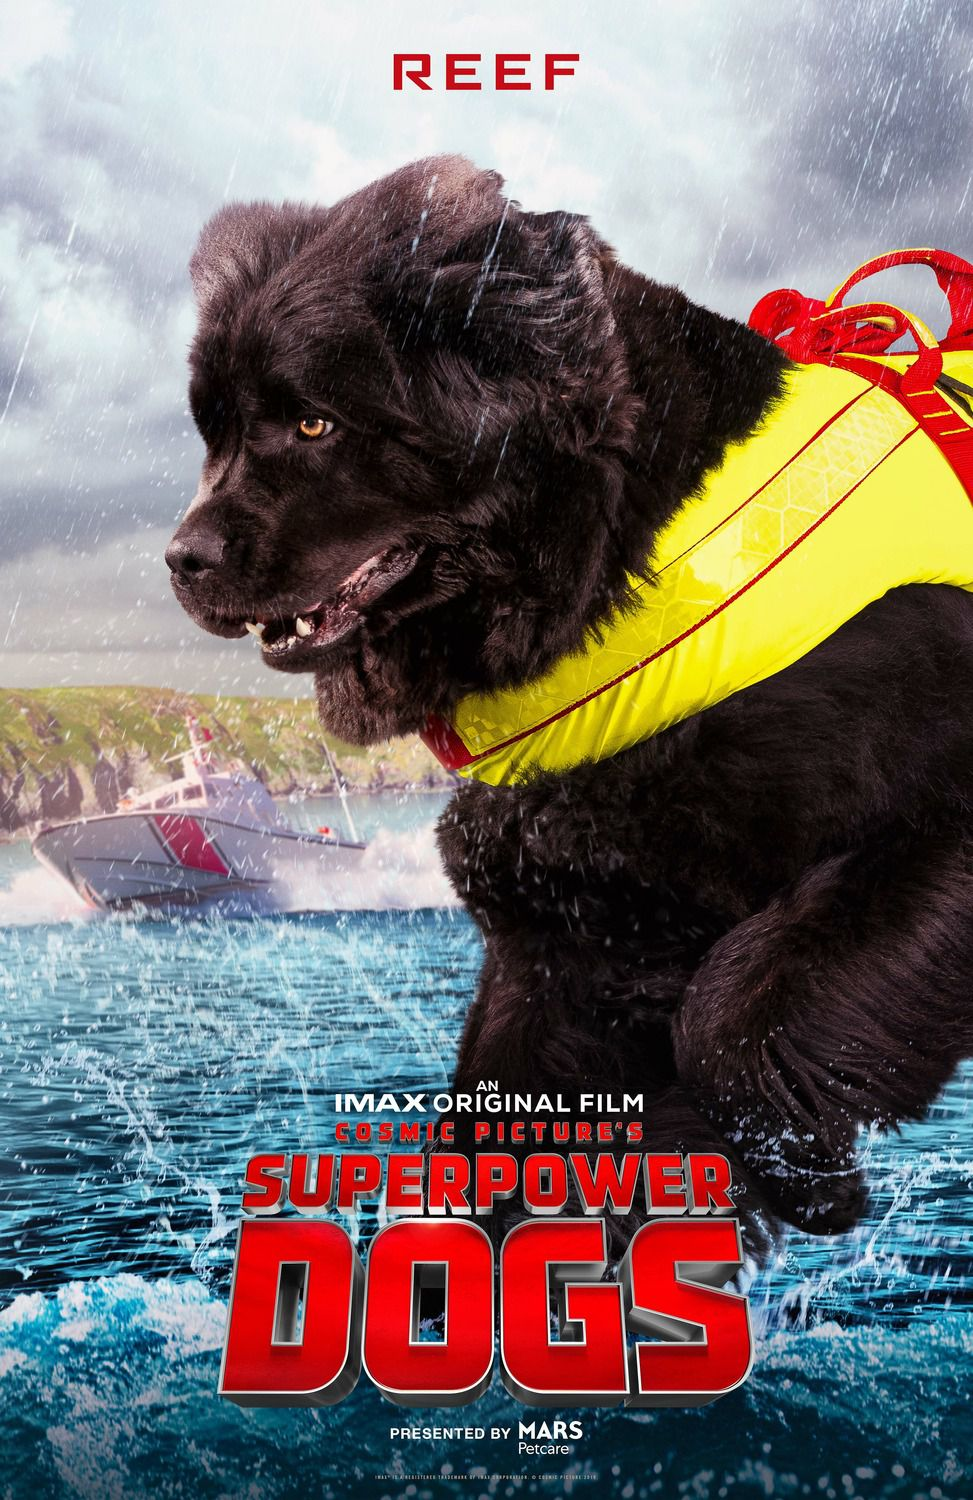 Superpower Dogs: Reef